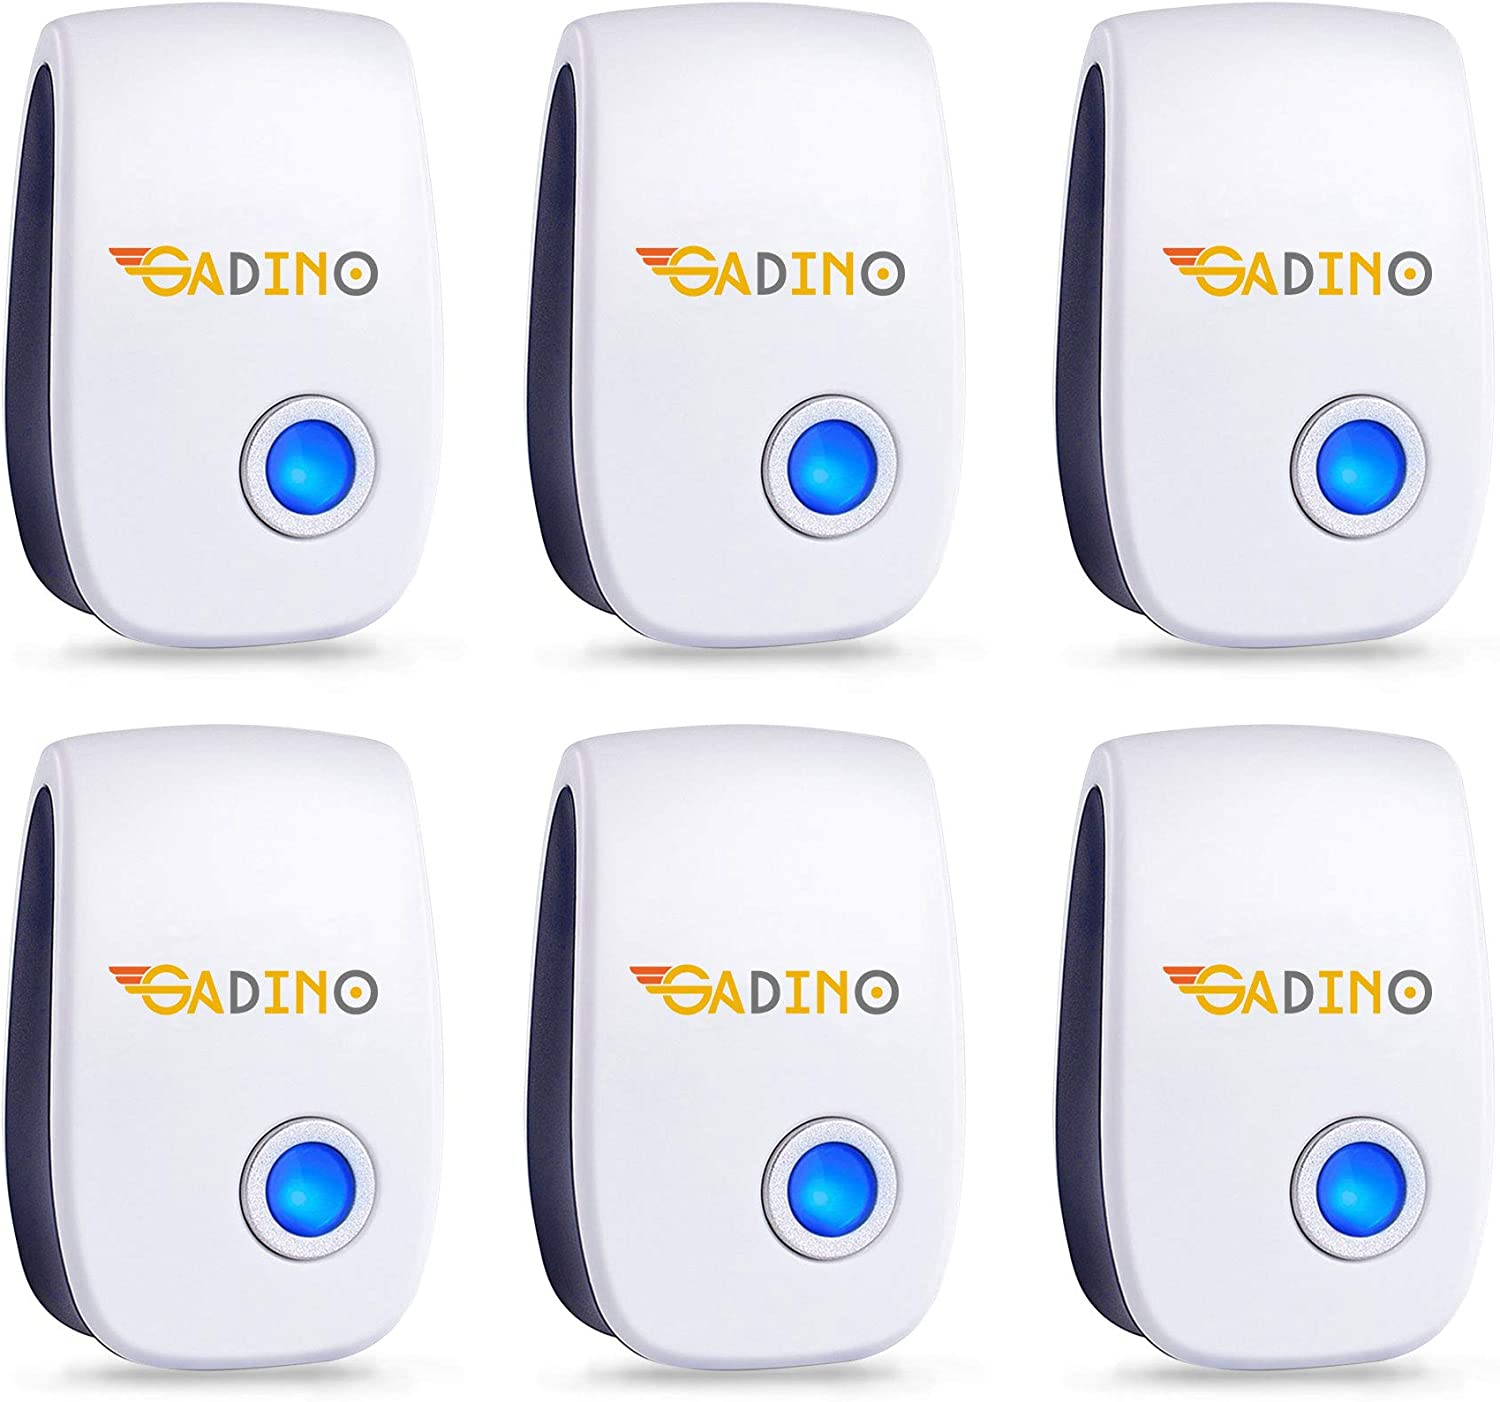 GADINO Indoor Ultrasonic Pest Repellent - Indoor Plug, Electronic and Ultrasound Repeller - Insects, Mice, Spiders, Mosquitoes, Bugs Control (Pack of 6)